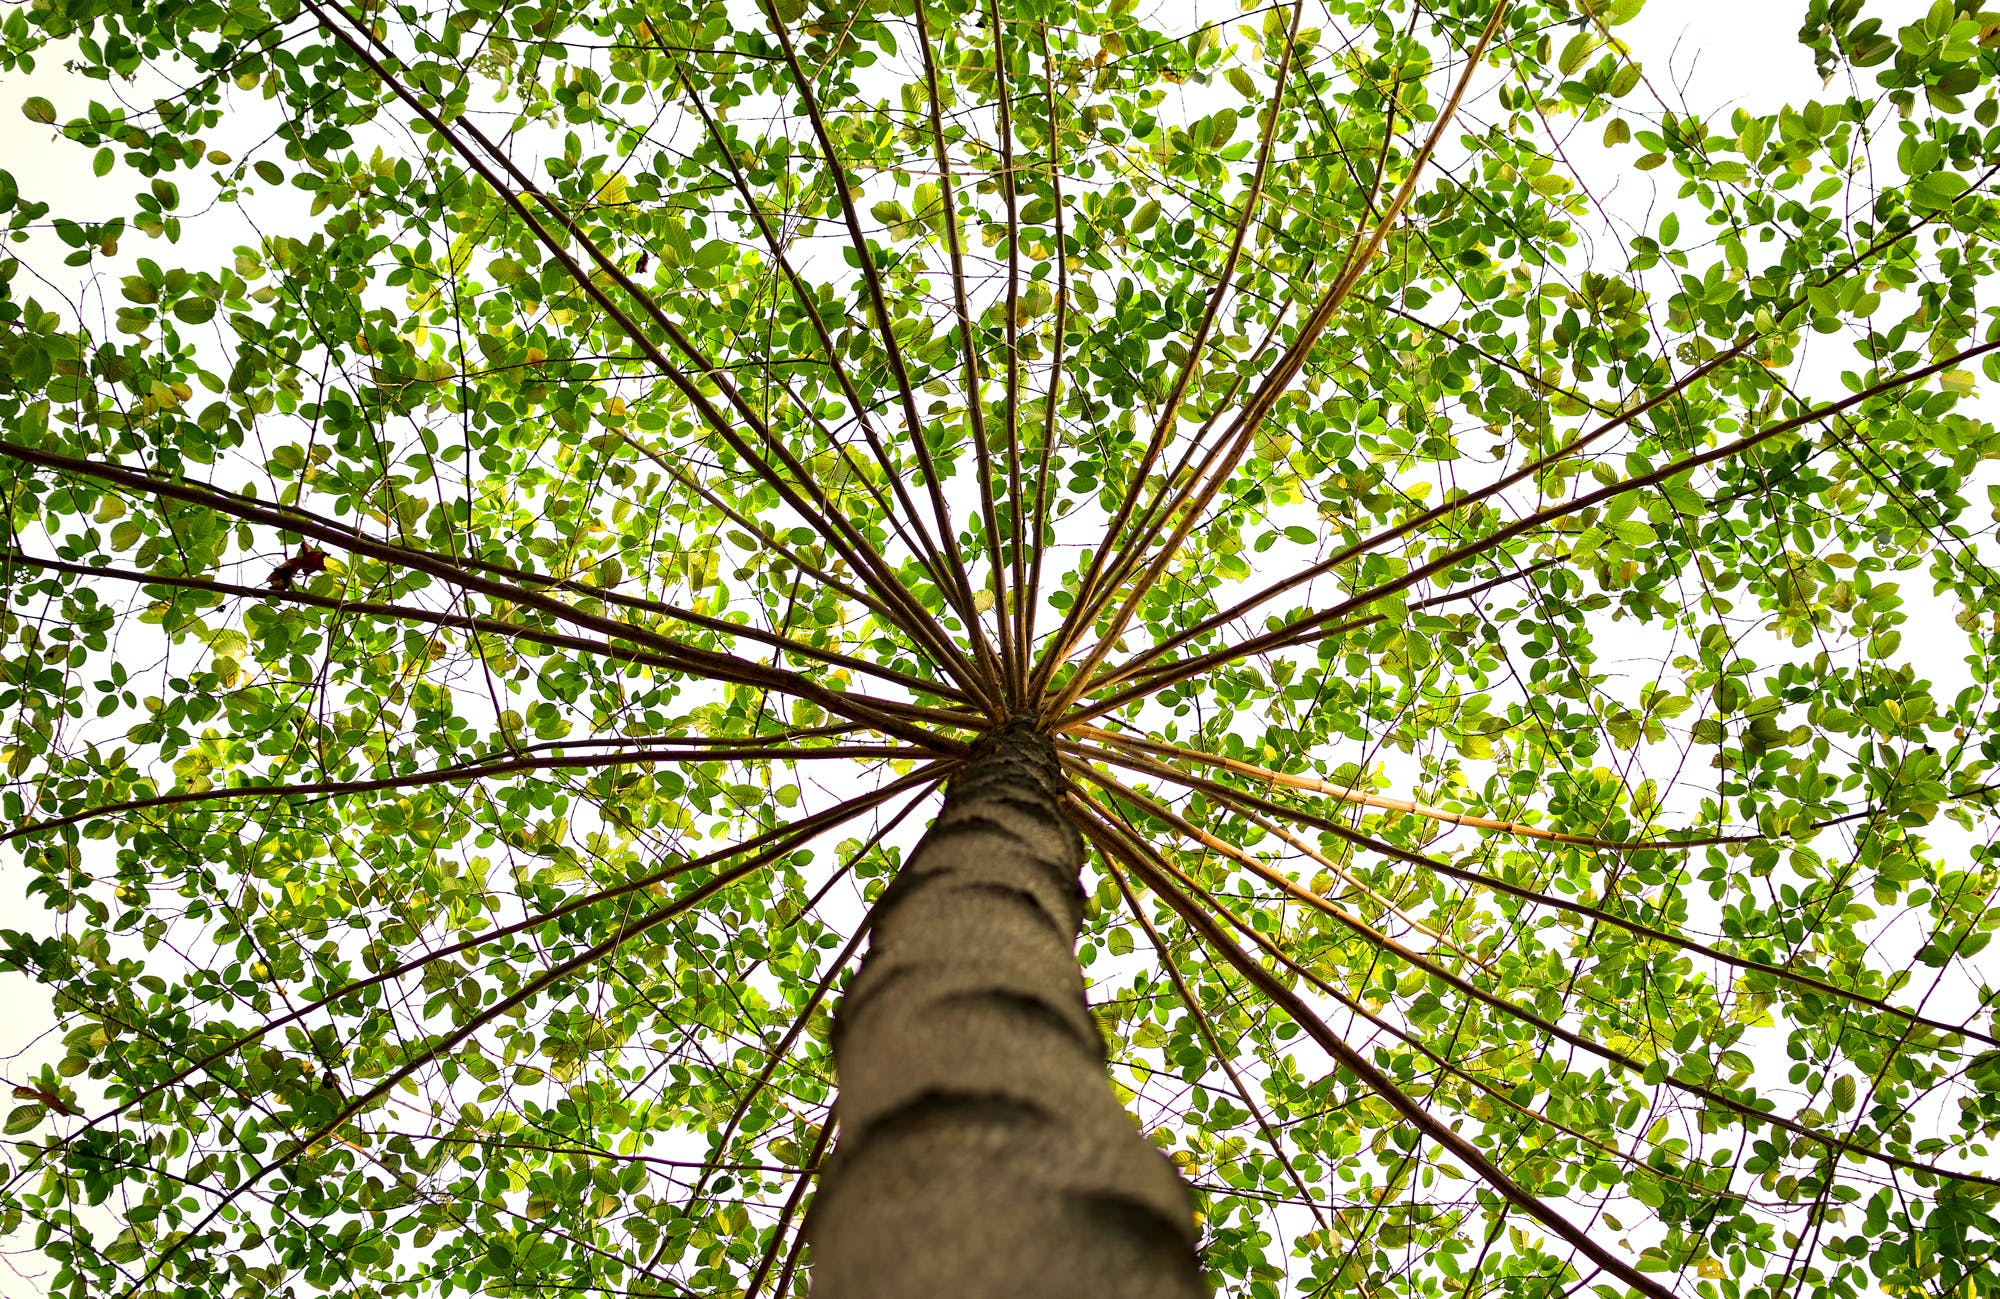 Bottom View of Green Leaved Tree during Daytime